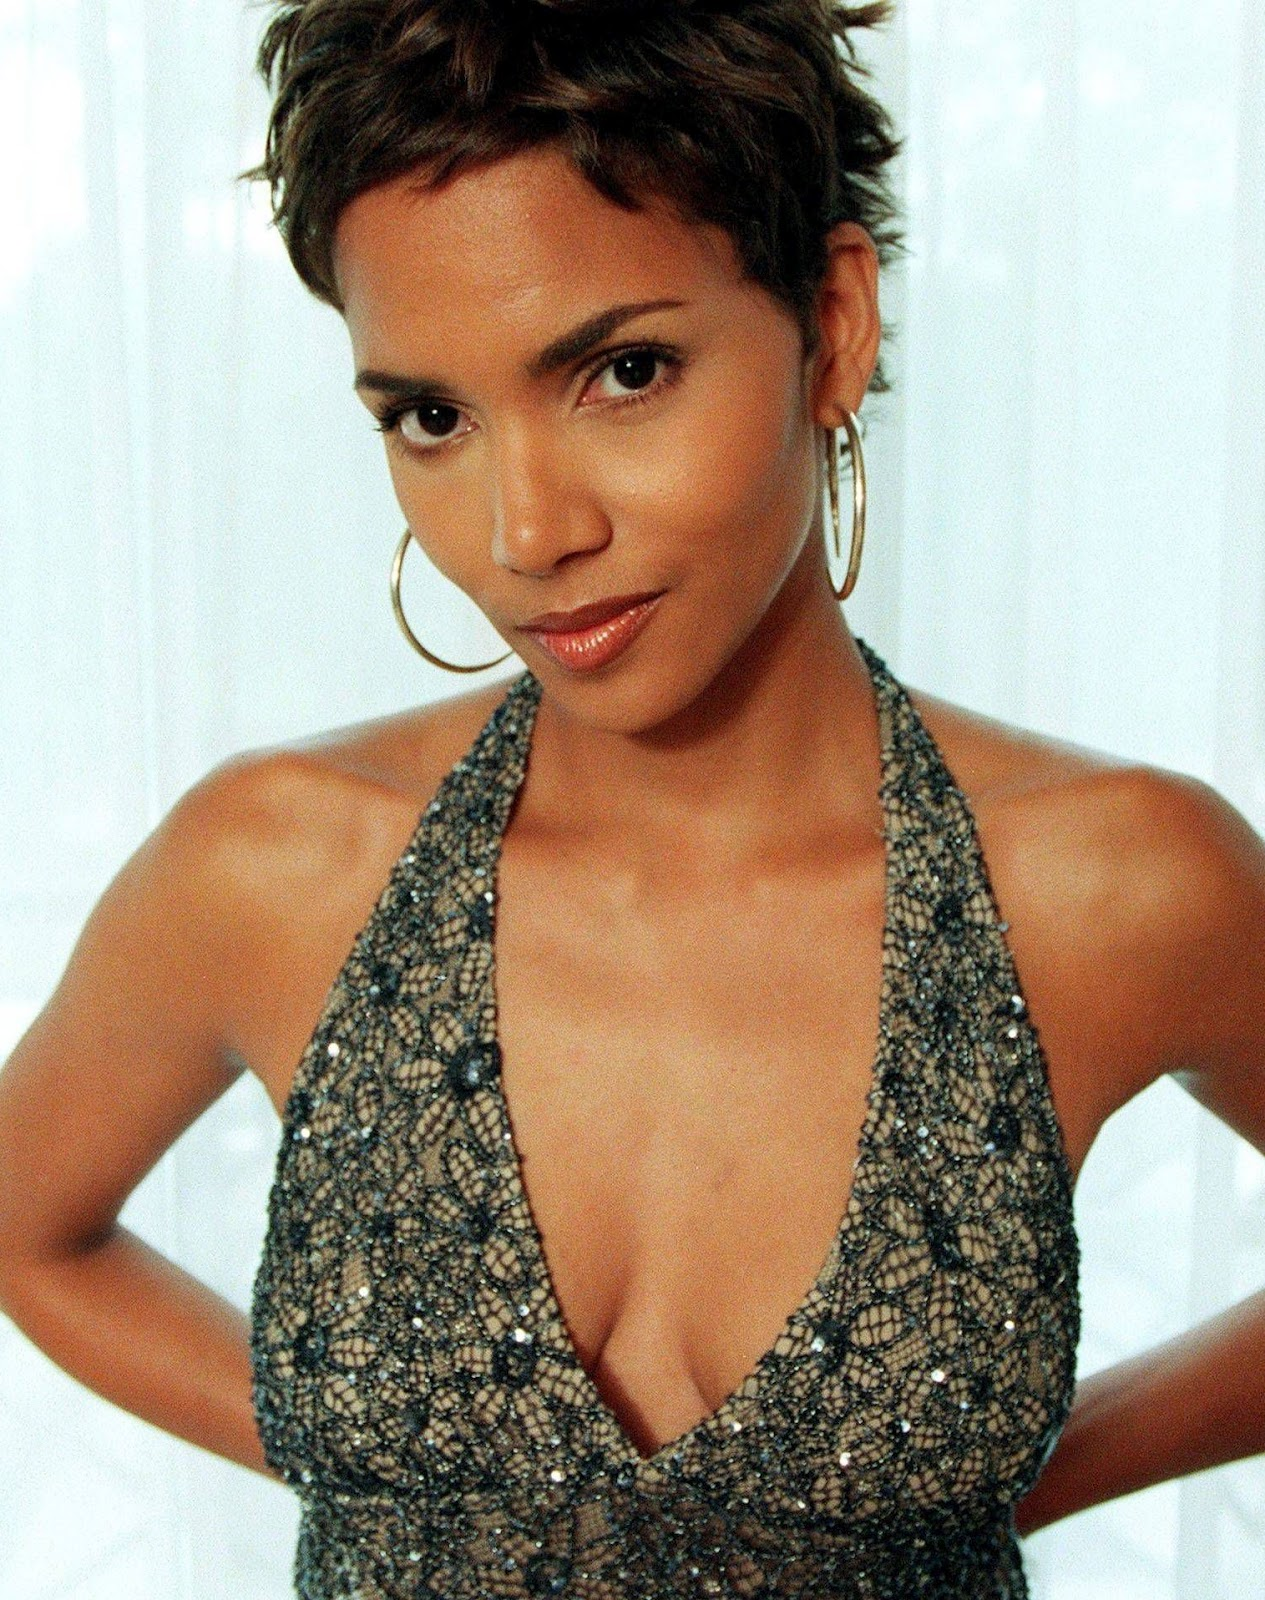 Halle Berry Hd Wallpapers , Halle Berry Hd Wallpapers New -1126